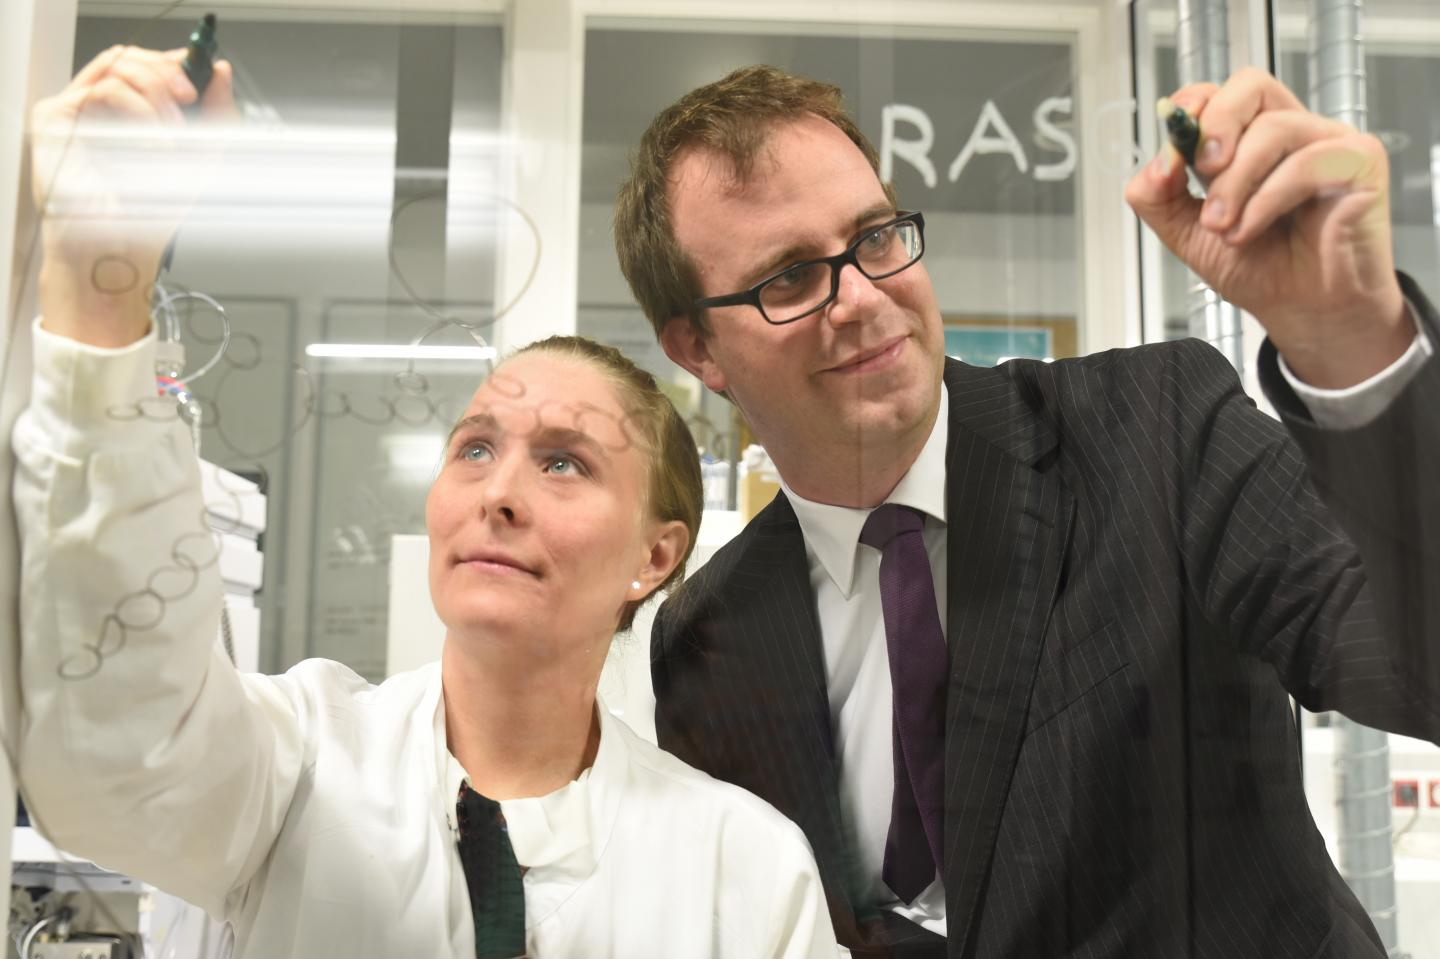 Senior author Kaan Boztug and first author Elisabeth Salzer. Image Credit: CeMM/Wolfgang Däuble